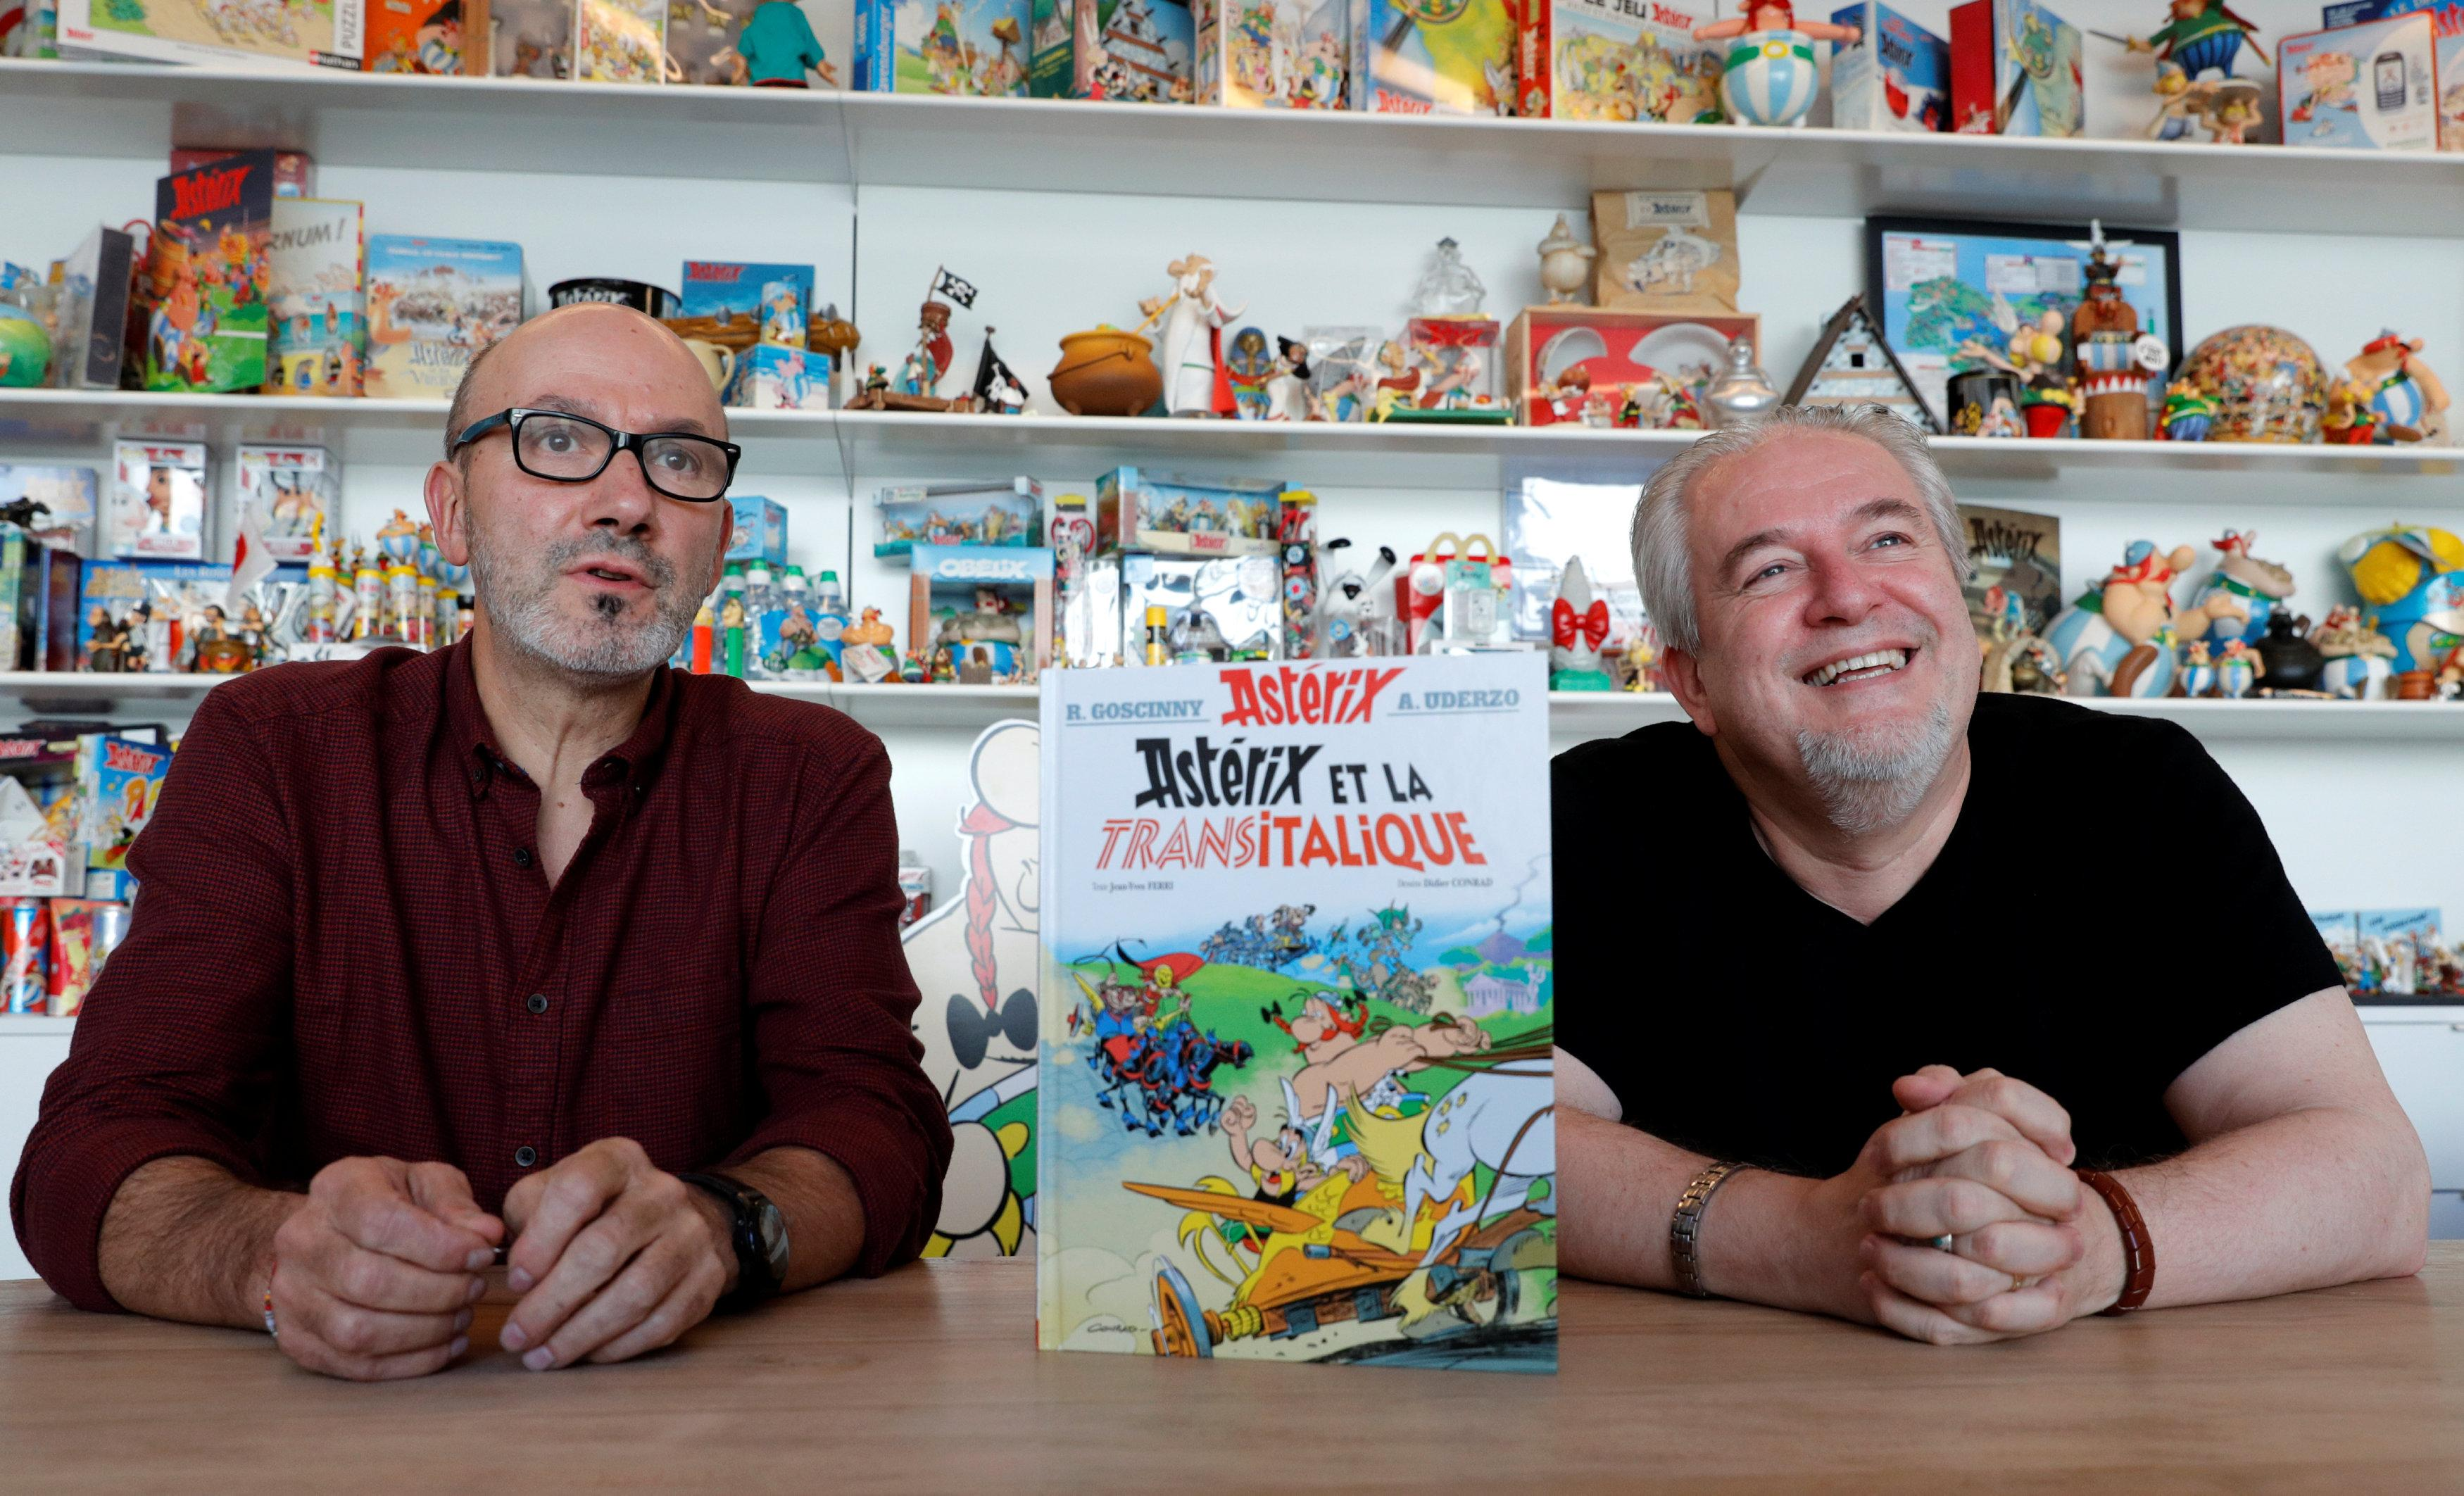 Author Jean-Yves Ferri (L) and illustrator Didier Conrad (R) stand next to a copy of their new comic album